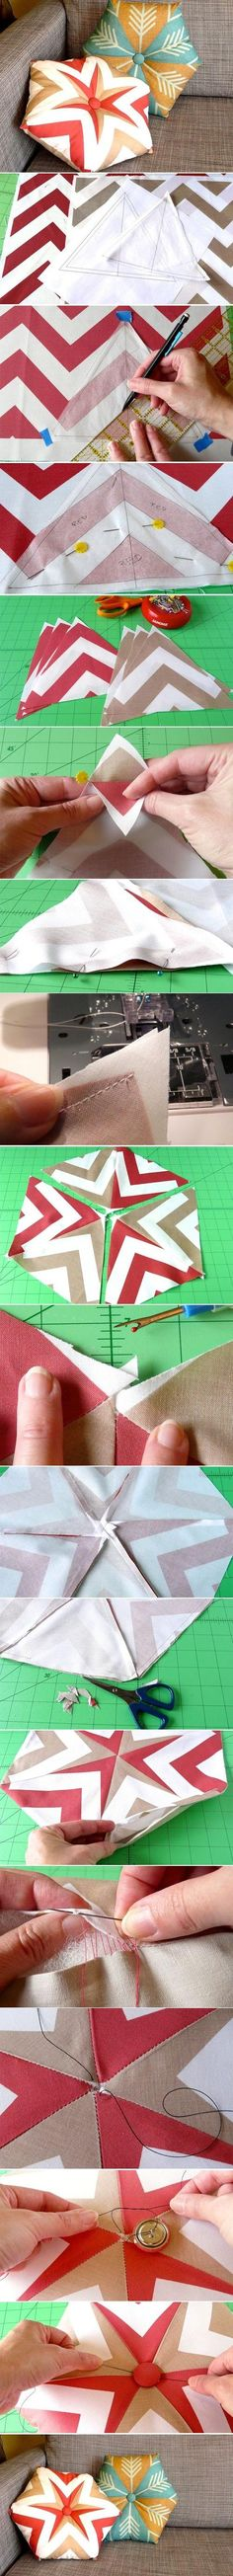 DIY Hexagonal tufted throw cushion by diyforever.  Add some spunk to the sofa.